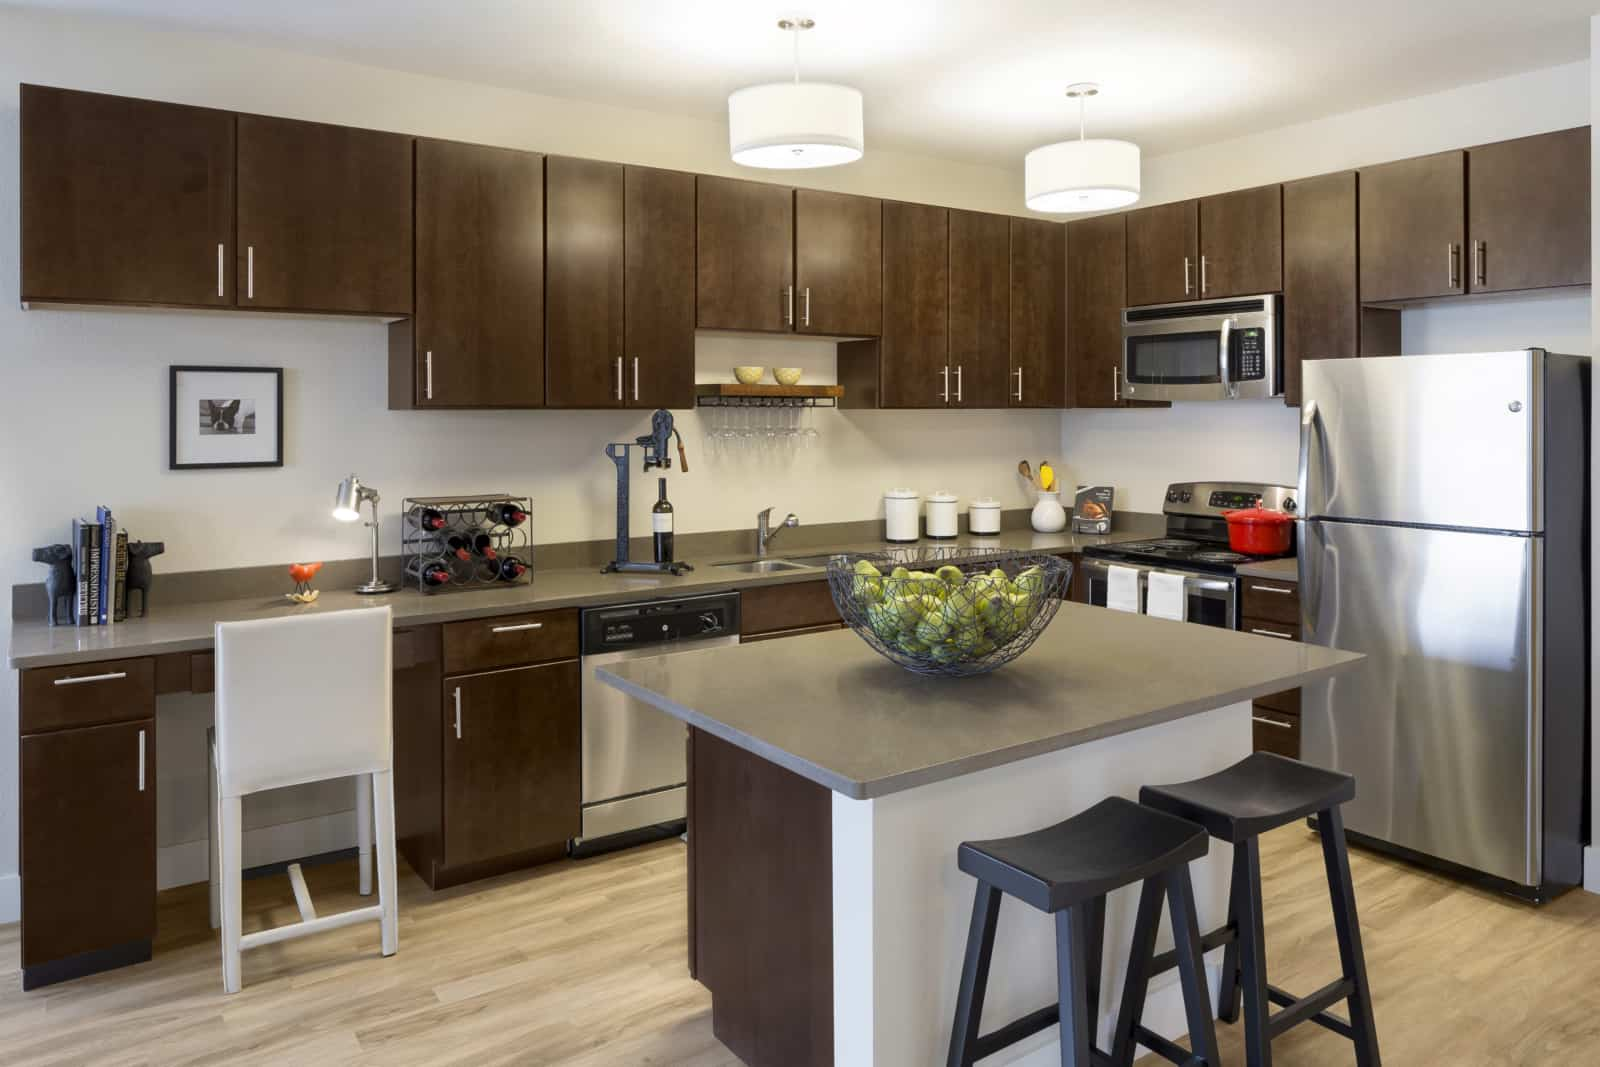 Interior of kitchen with stainless steel appliances, central island with seating.